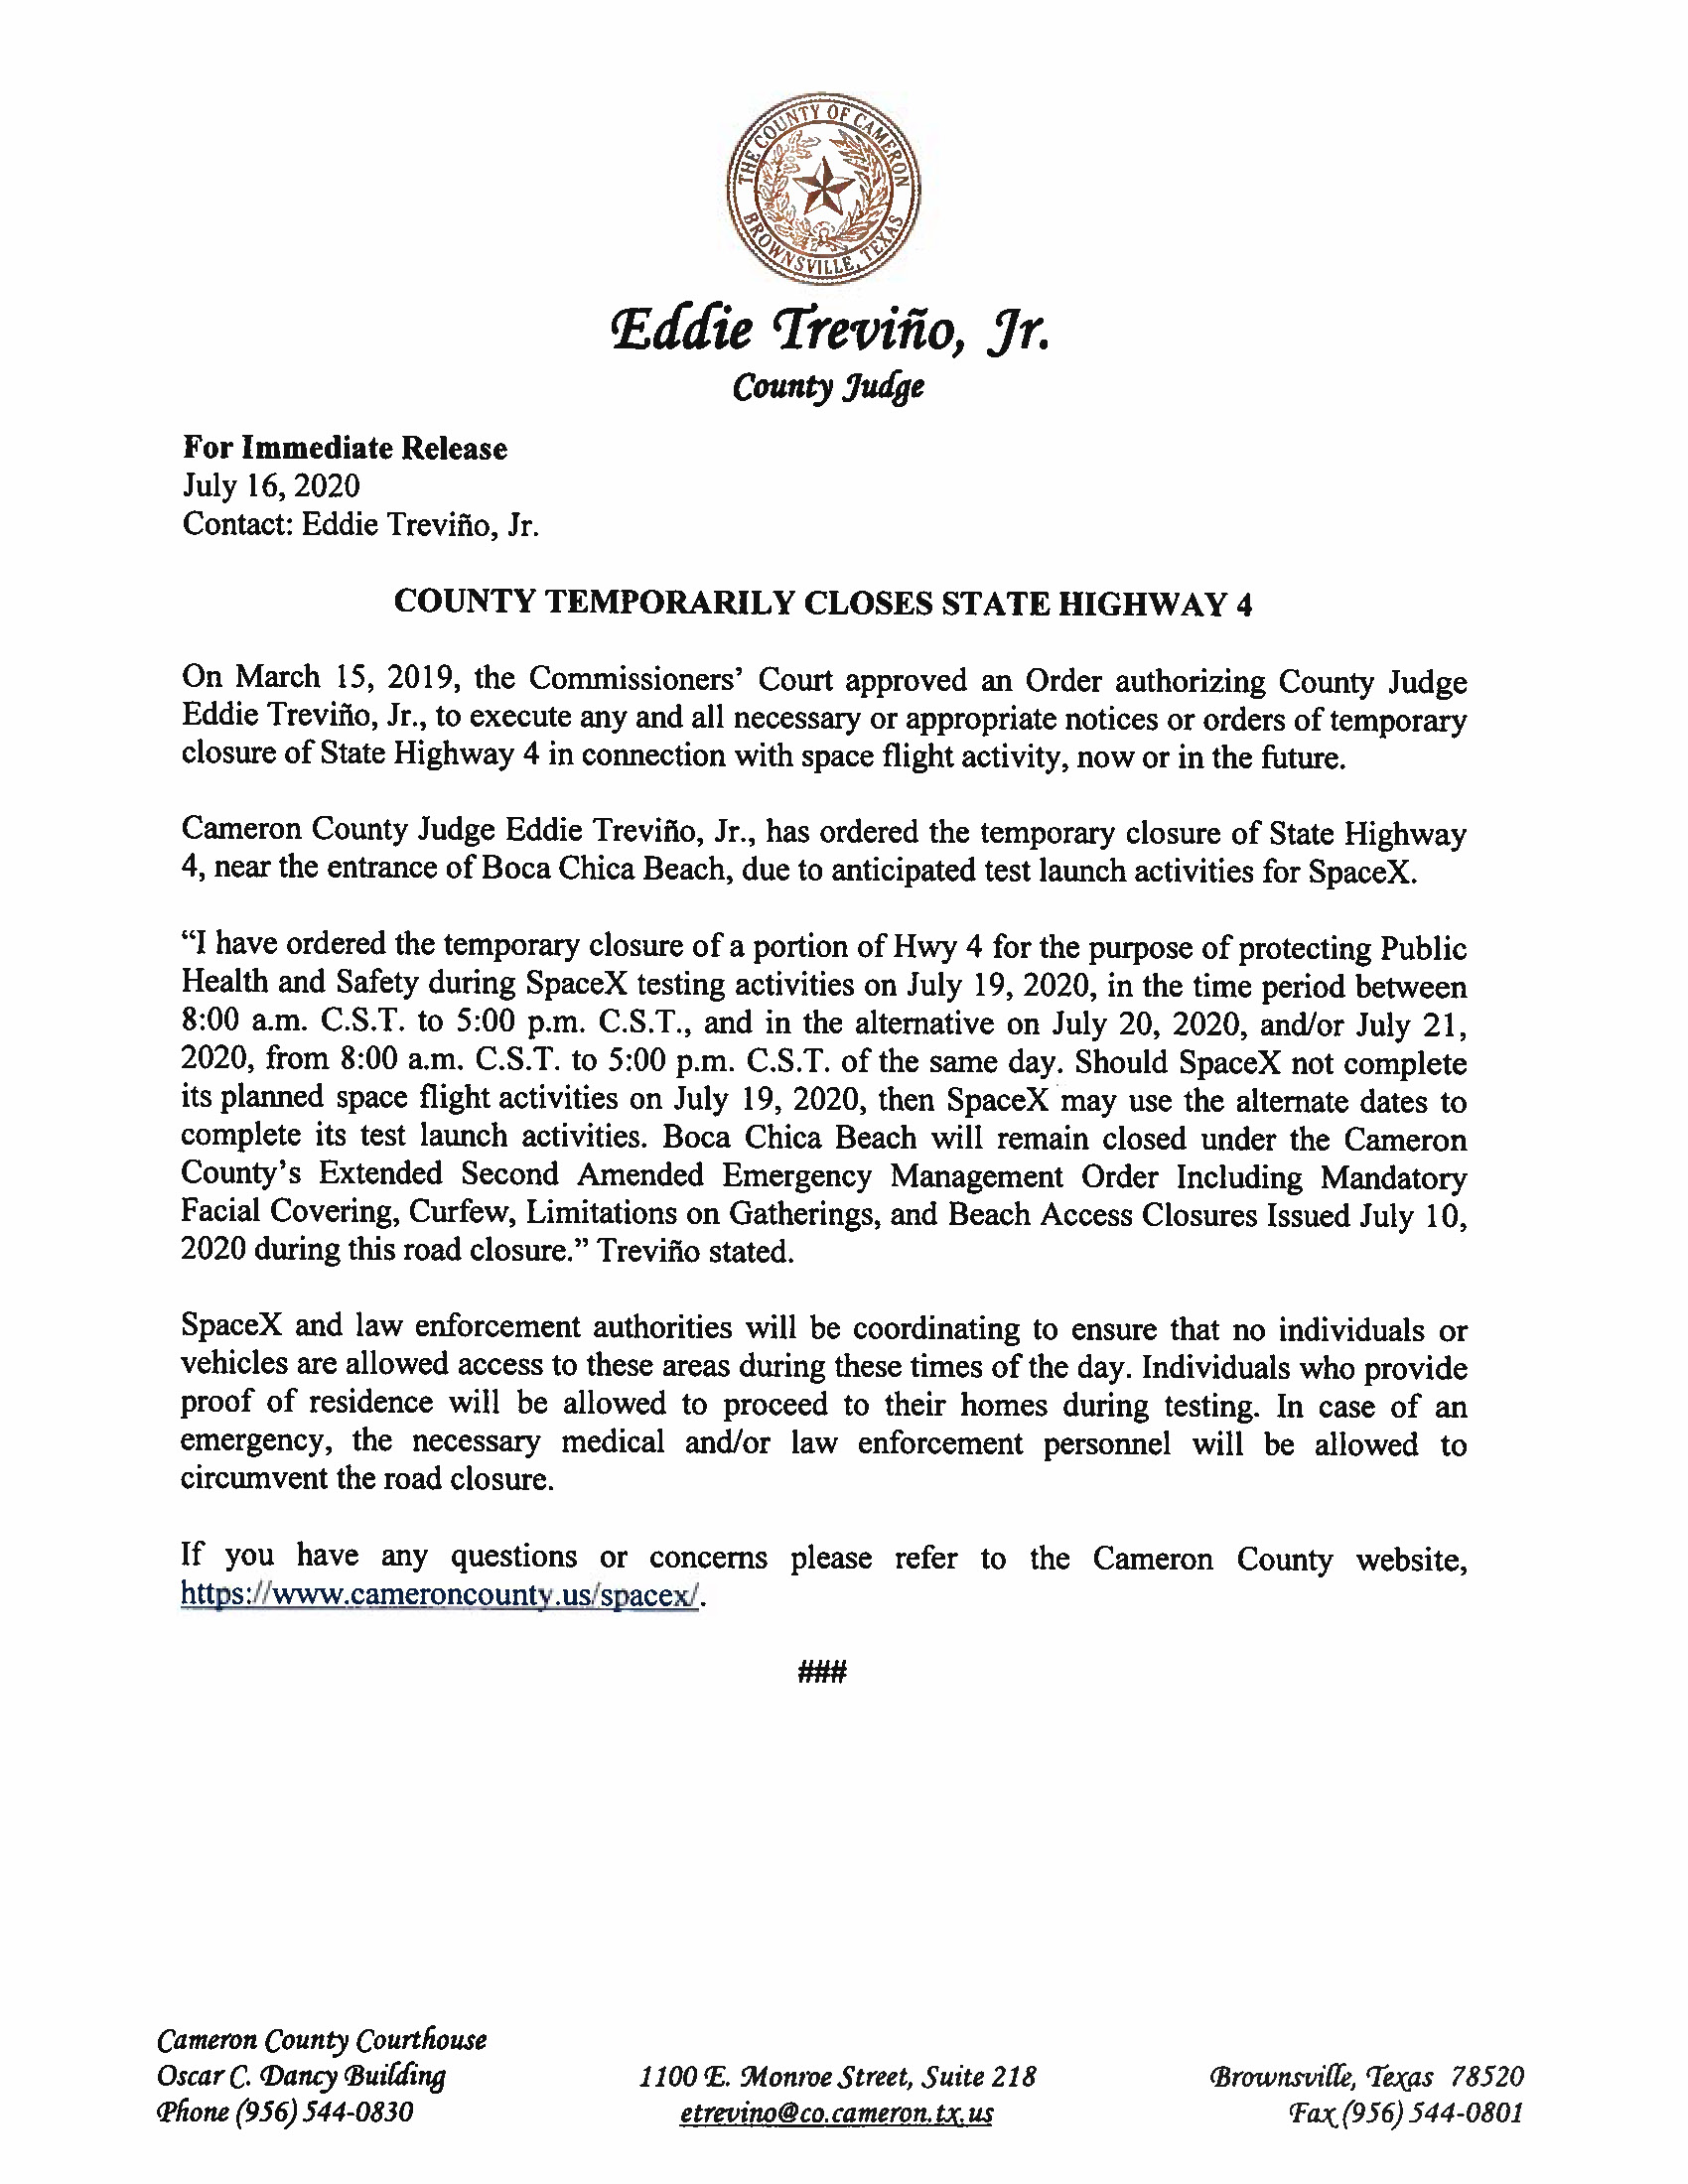 Press Release On Order Of Closure Related To SpaceX Flight.ROAD CLOSURE. English Spanish 07.19.2020.doc Page 1